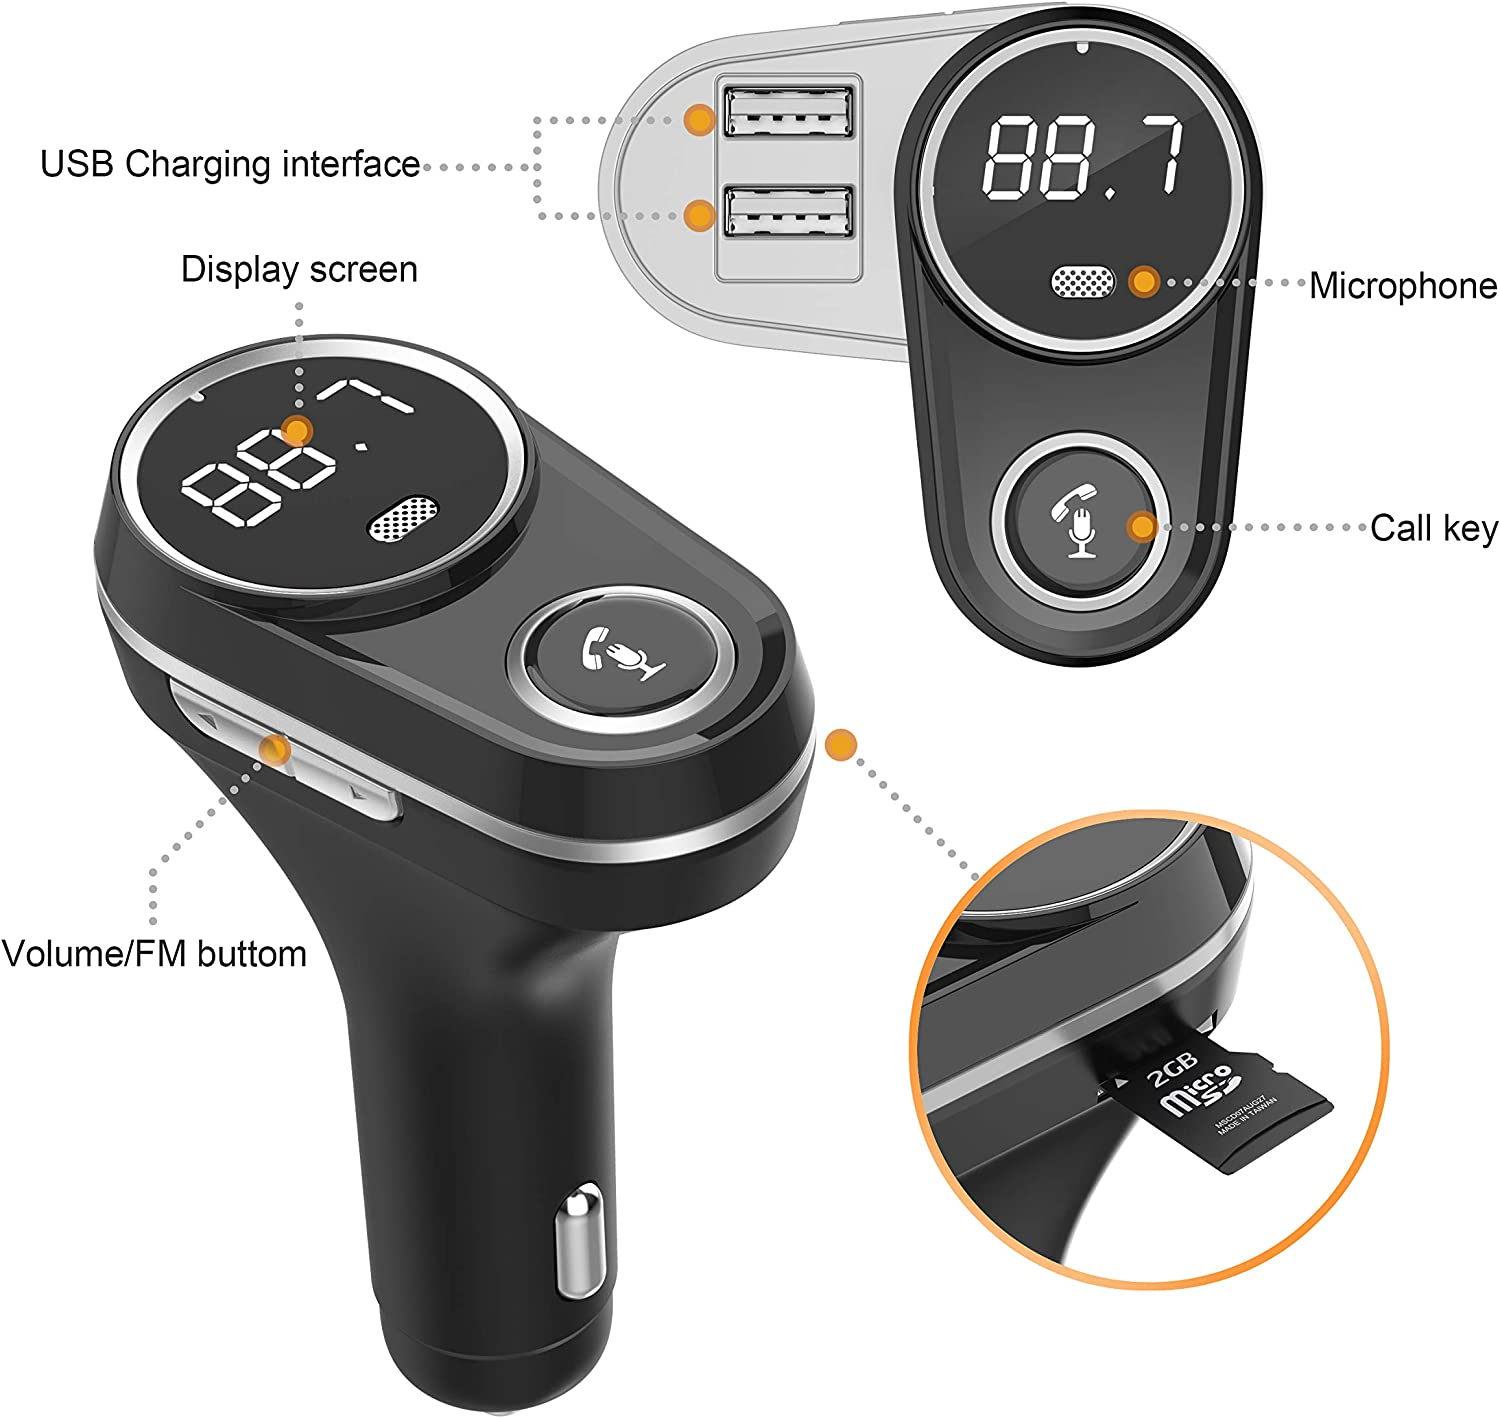 Silver Wireless Bluetooth FM Radio Adapter Car Kit with Hands-Free Calling Bluetooth FM Transmitter for Car, Rotating Design 5V//2.4A/&2.4 Concealled Dual USB Charging Ports.